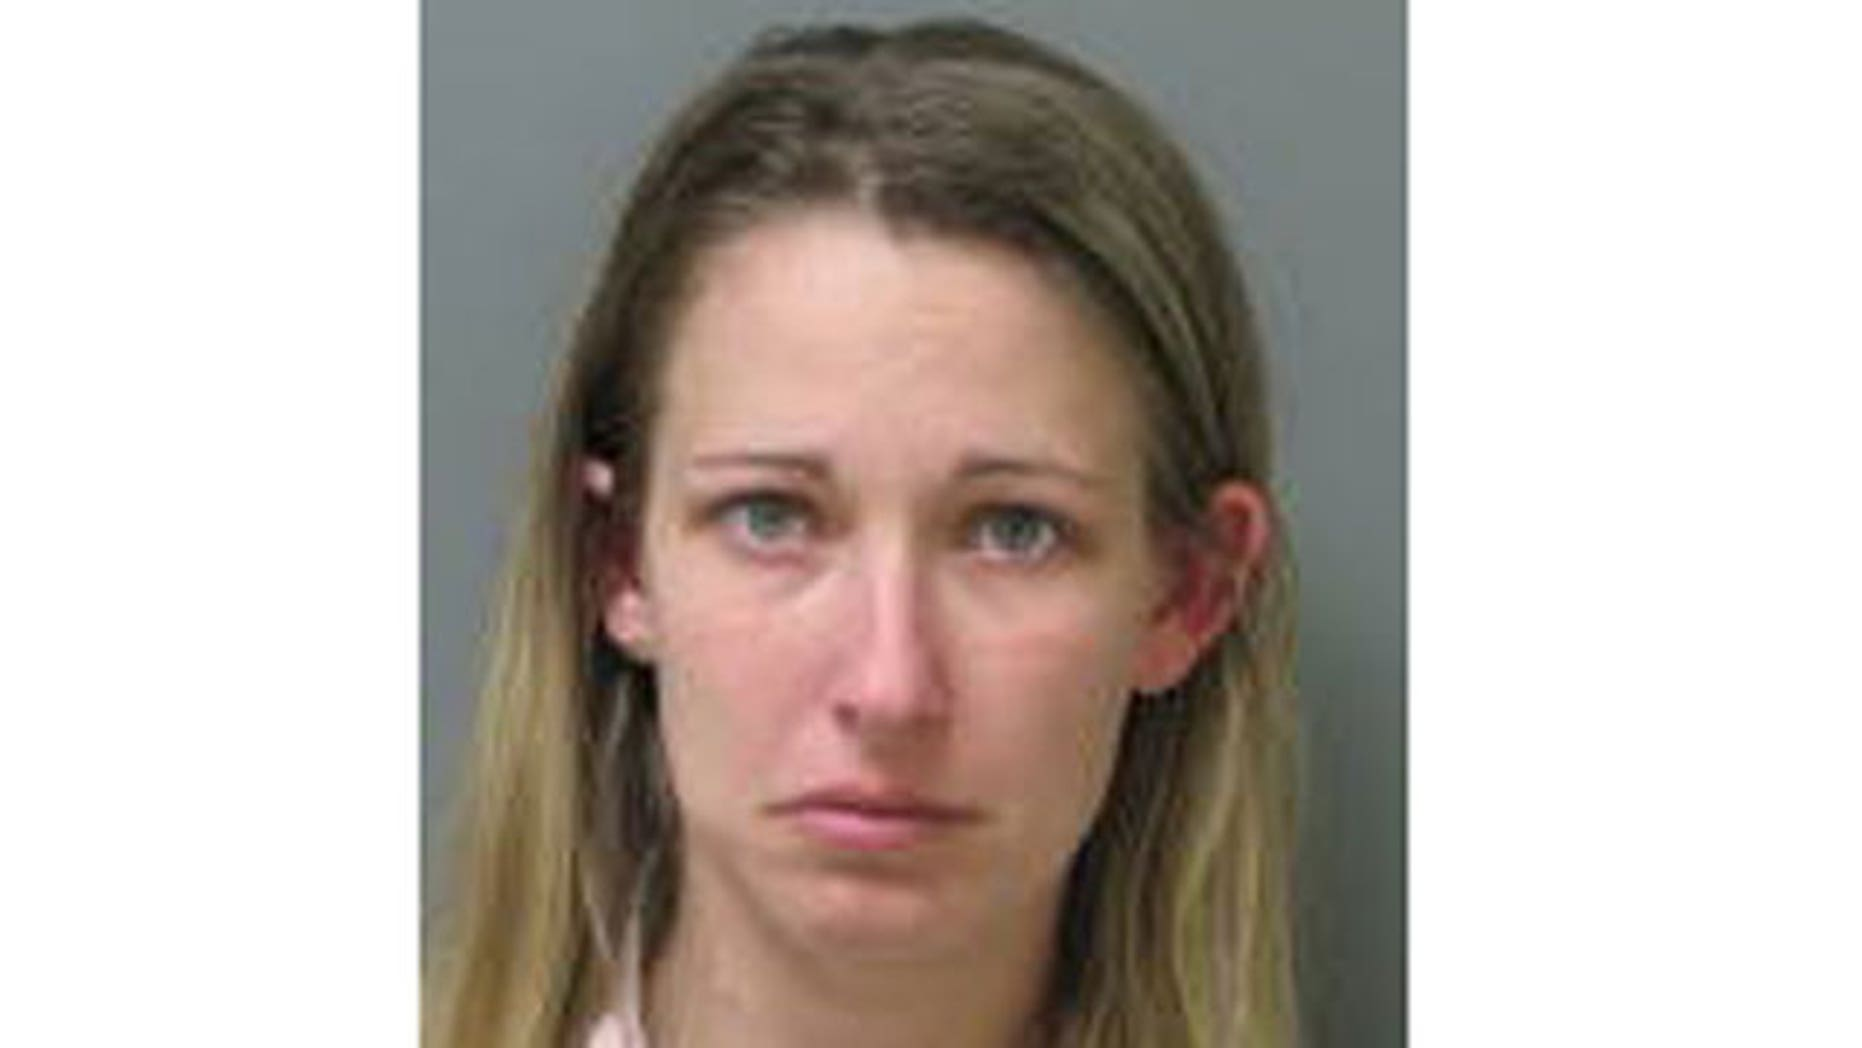 Police say 30-year old Angela Davis Murphree admitted to giving her baby her methadone pills.